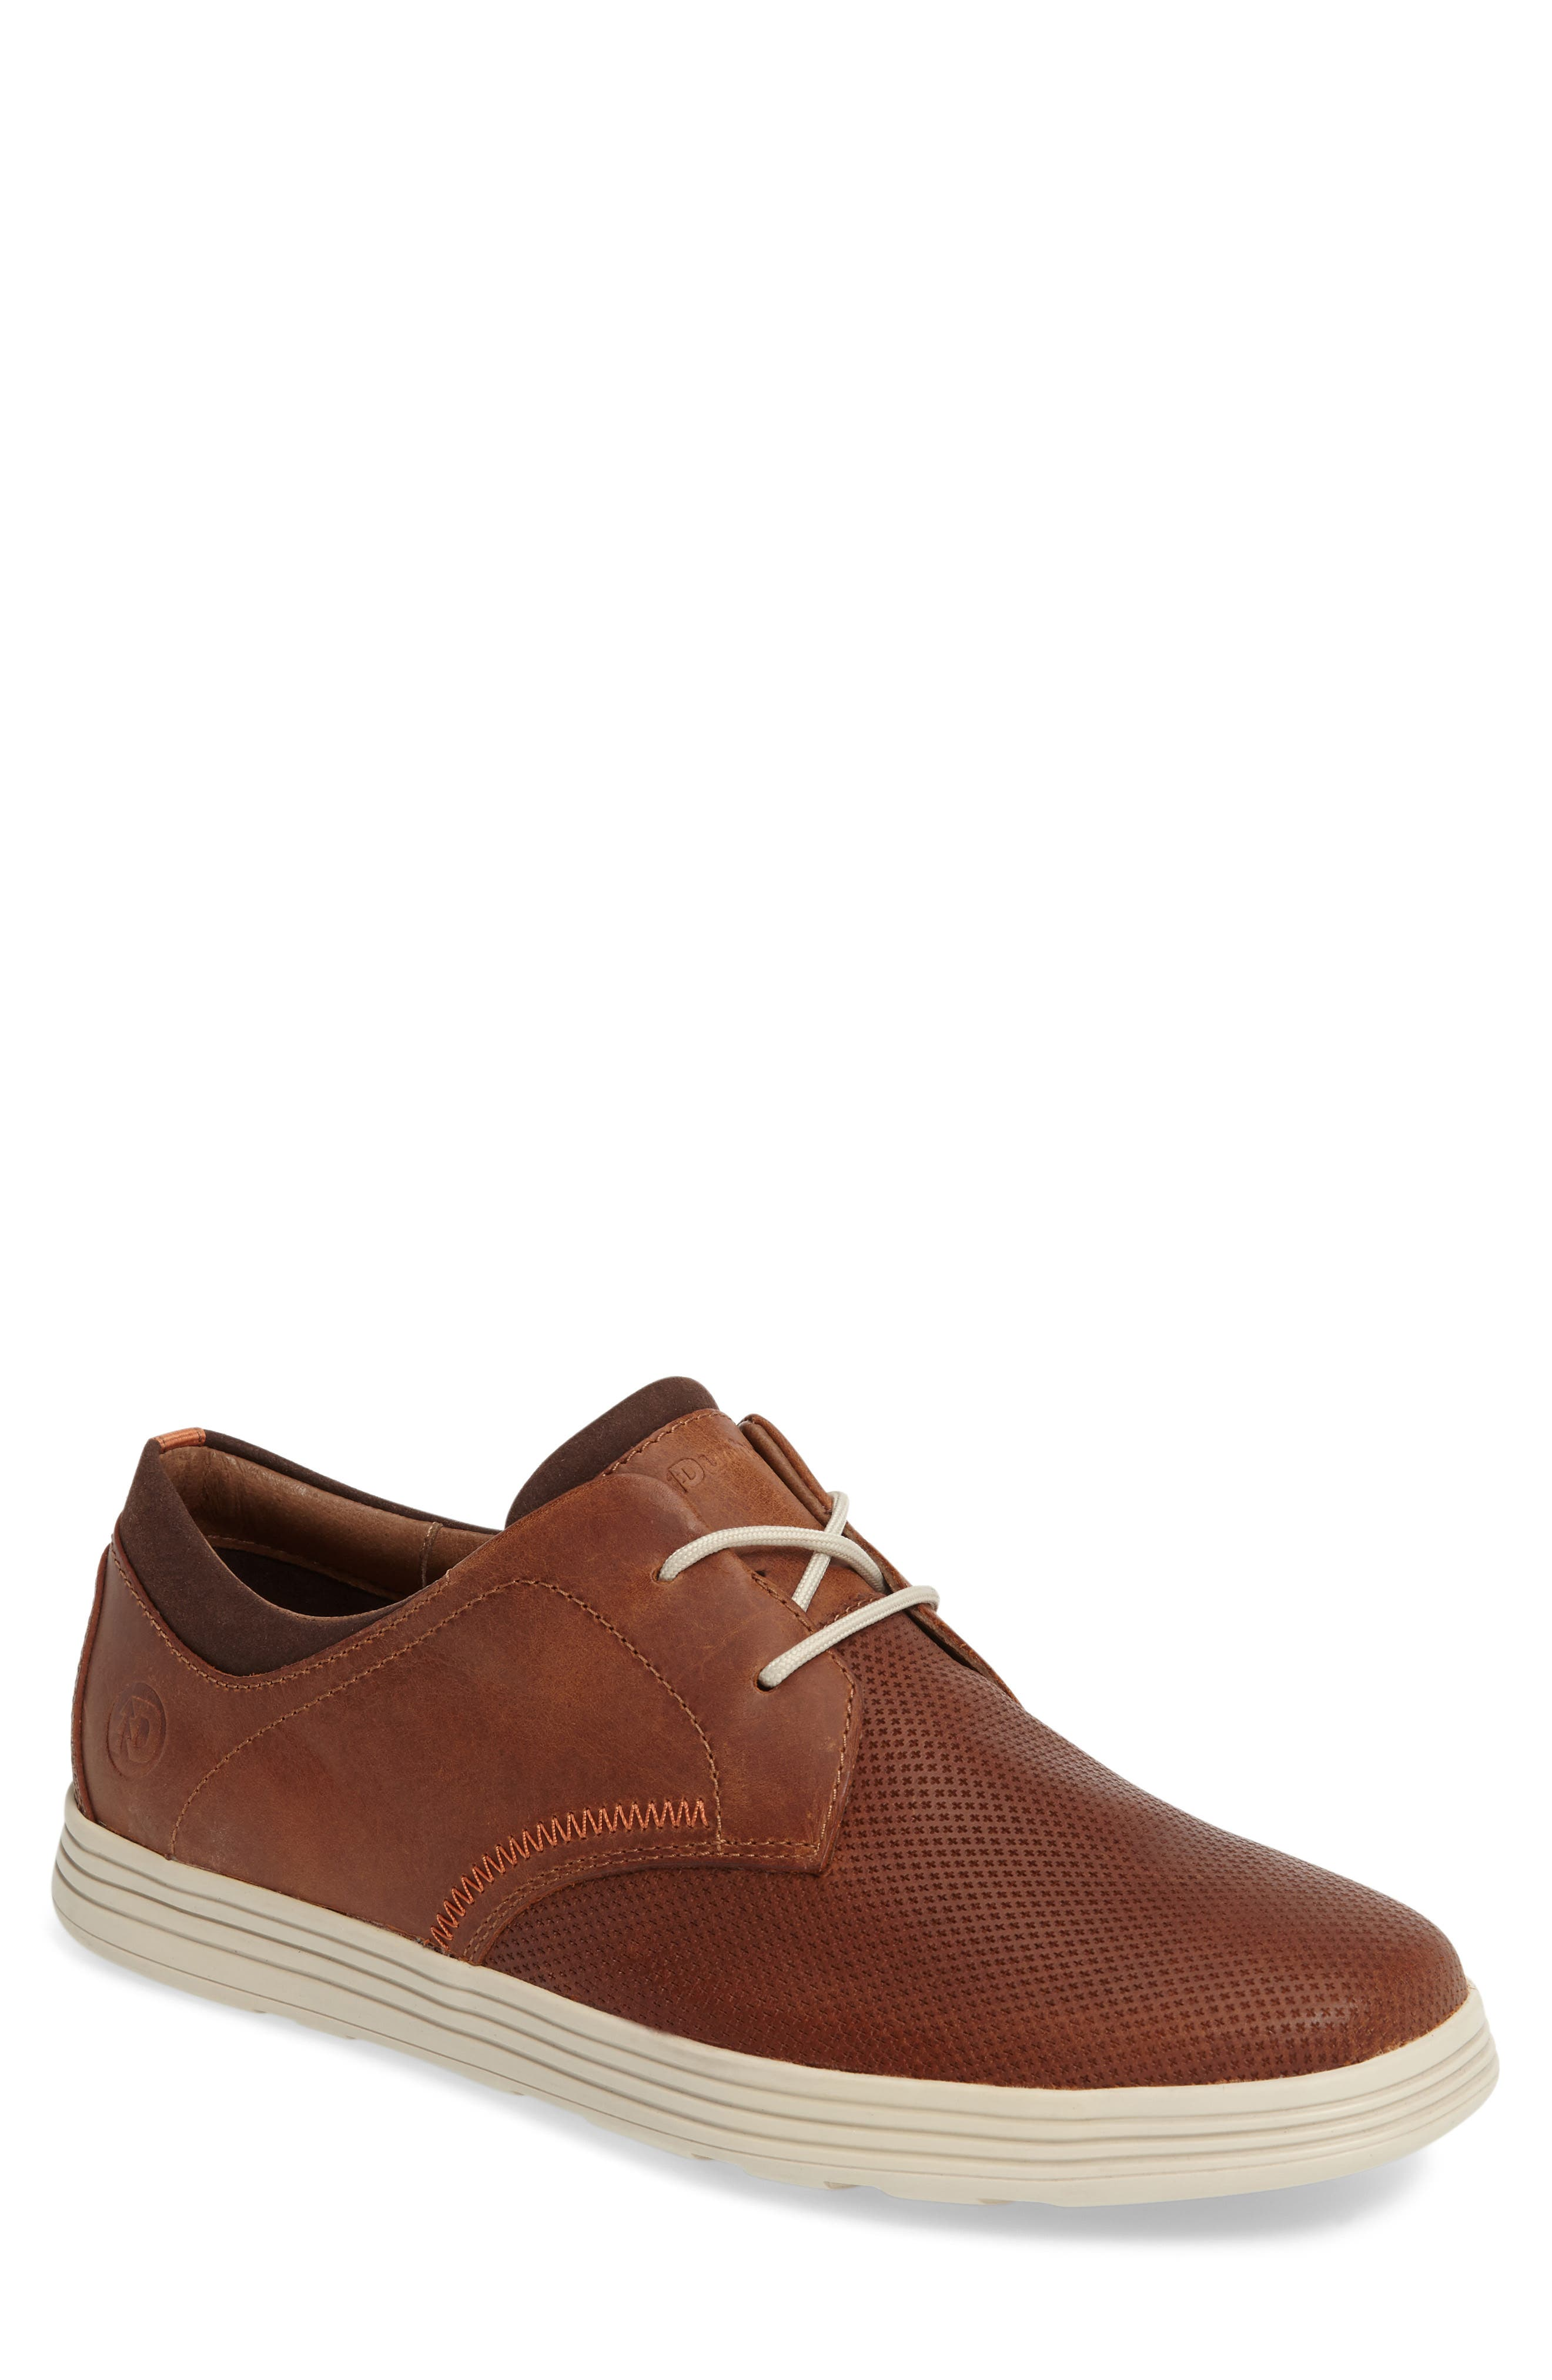 Colchester Embossed Oxford,                             Main thumbnail 1, color,                             BROWN